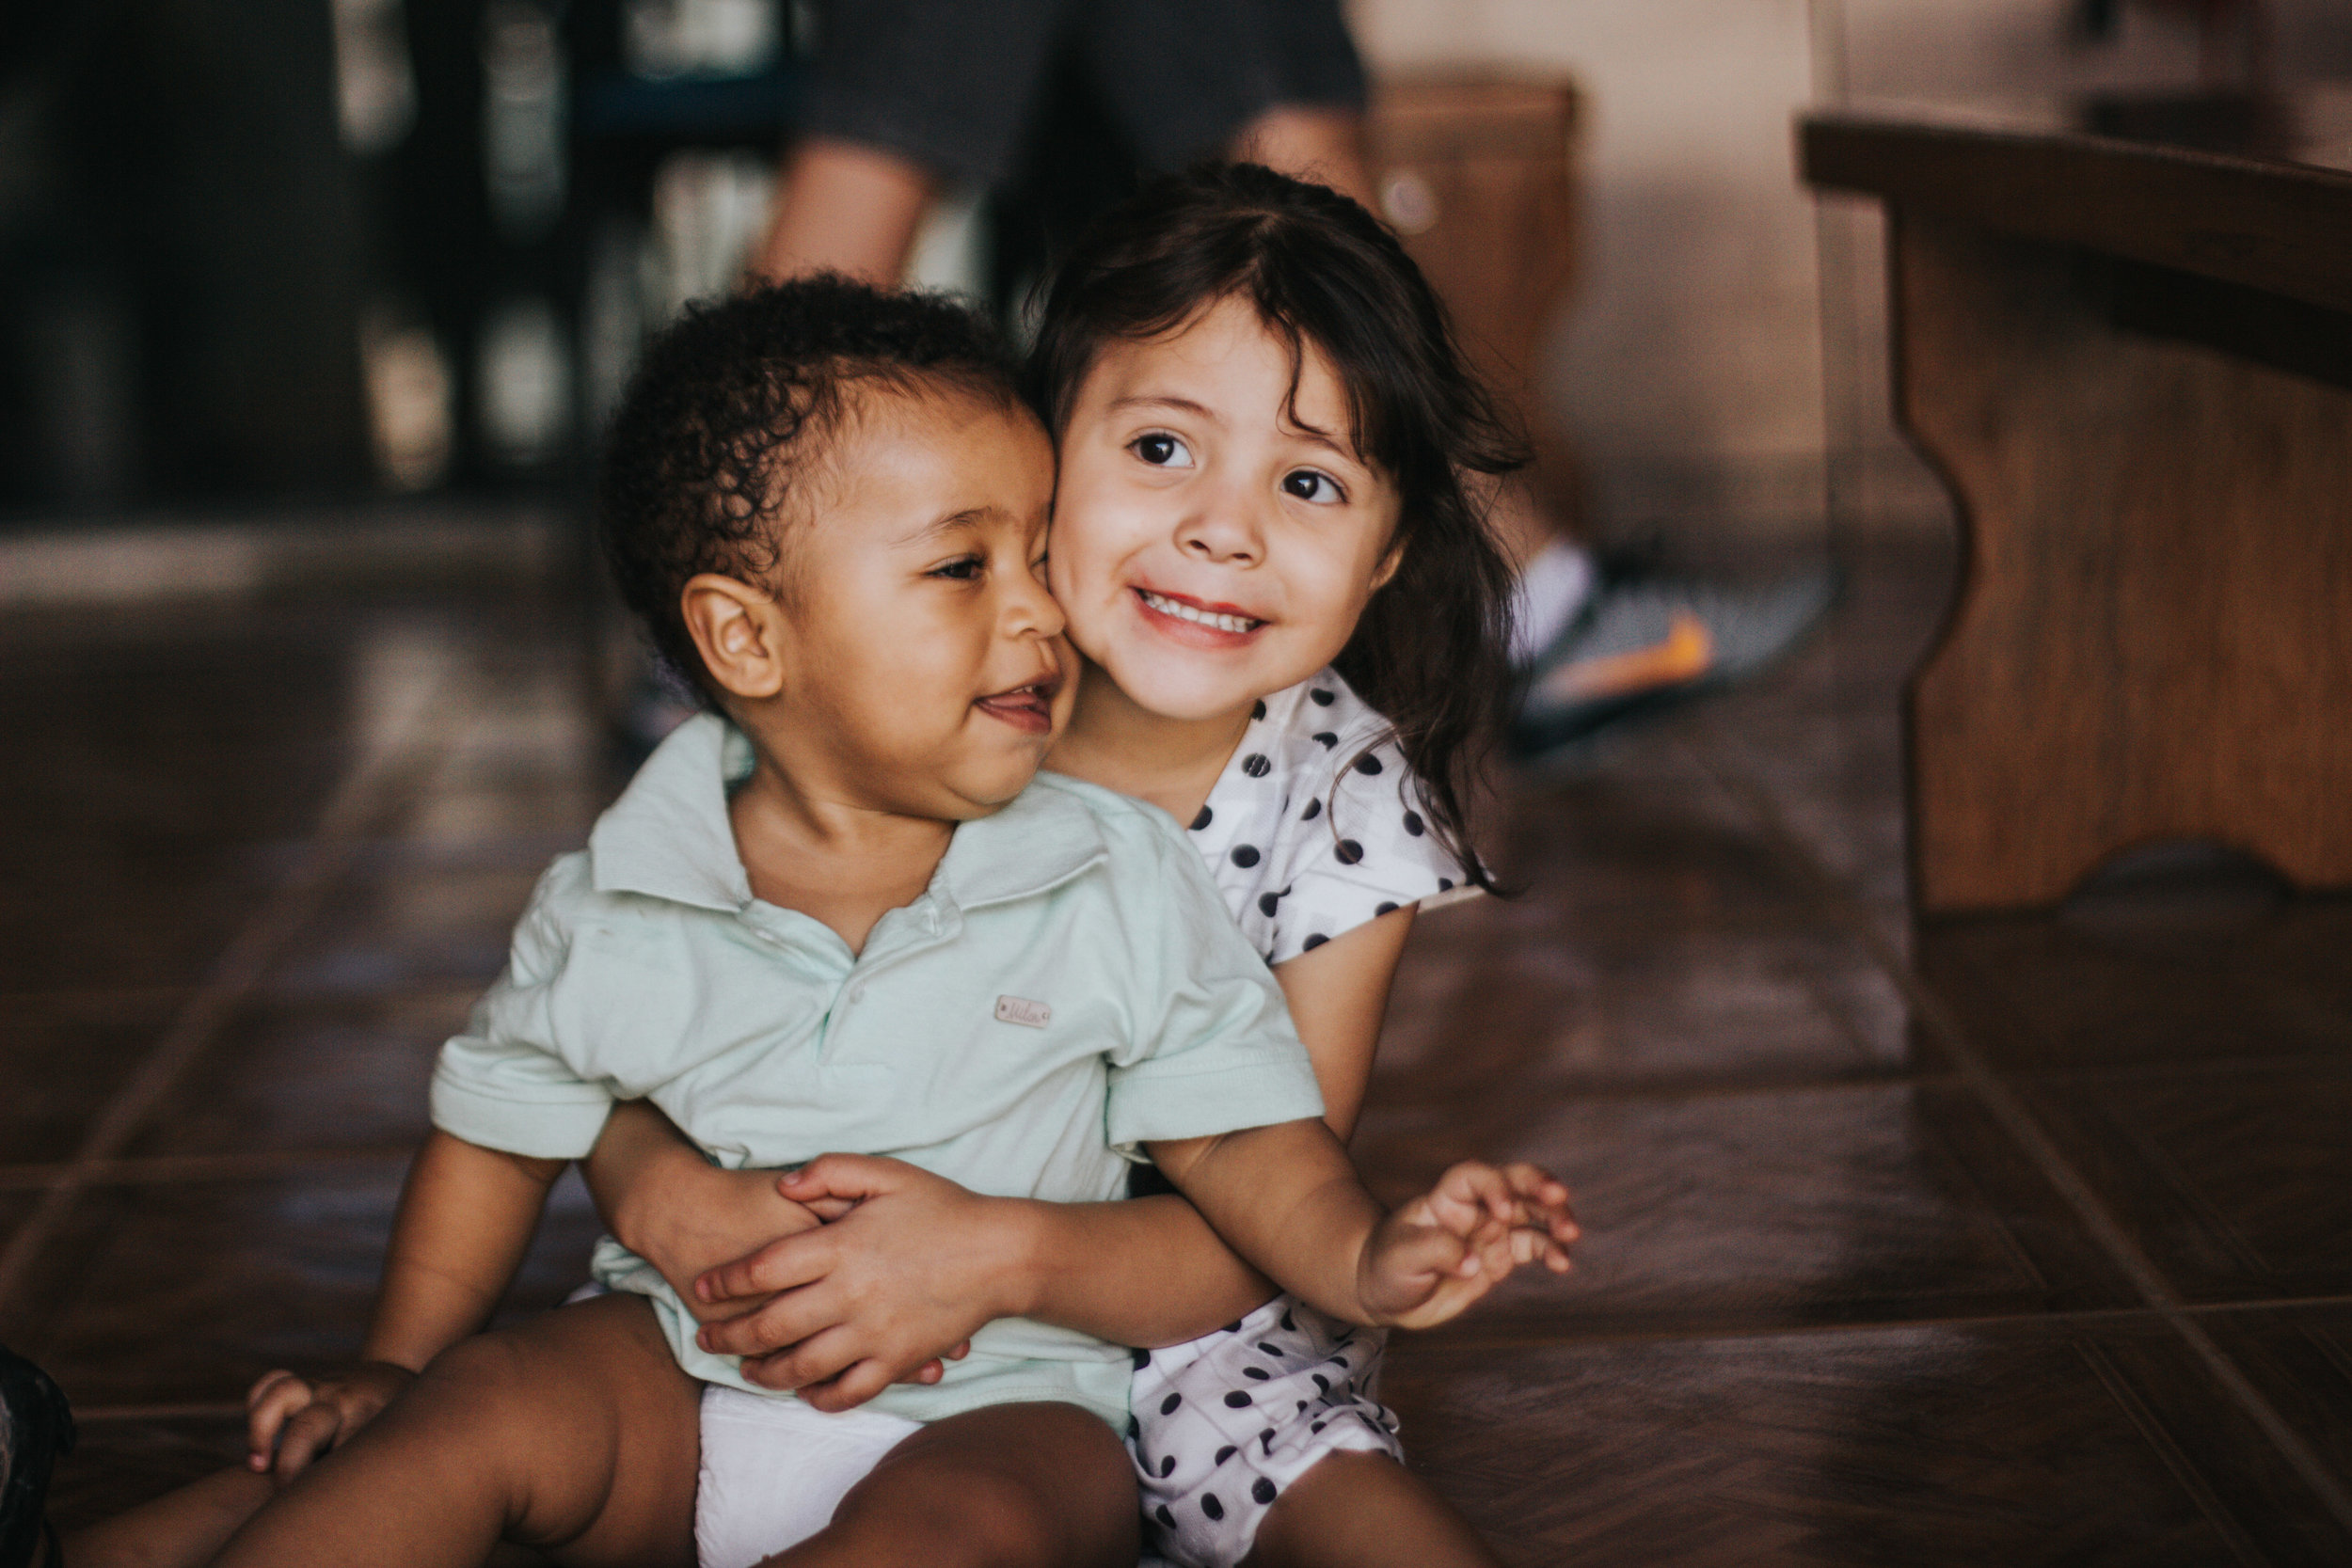 Recognizing Our Attachment Style Can Help Us in Our Relationships